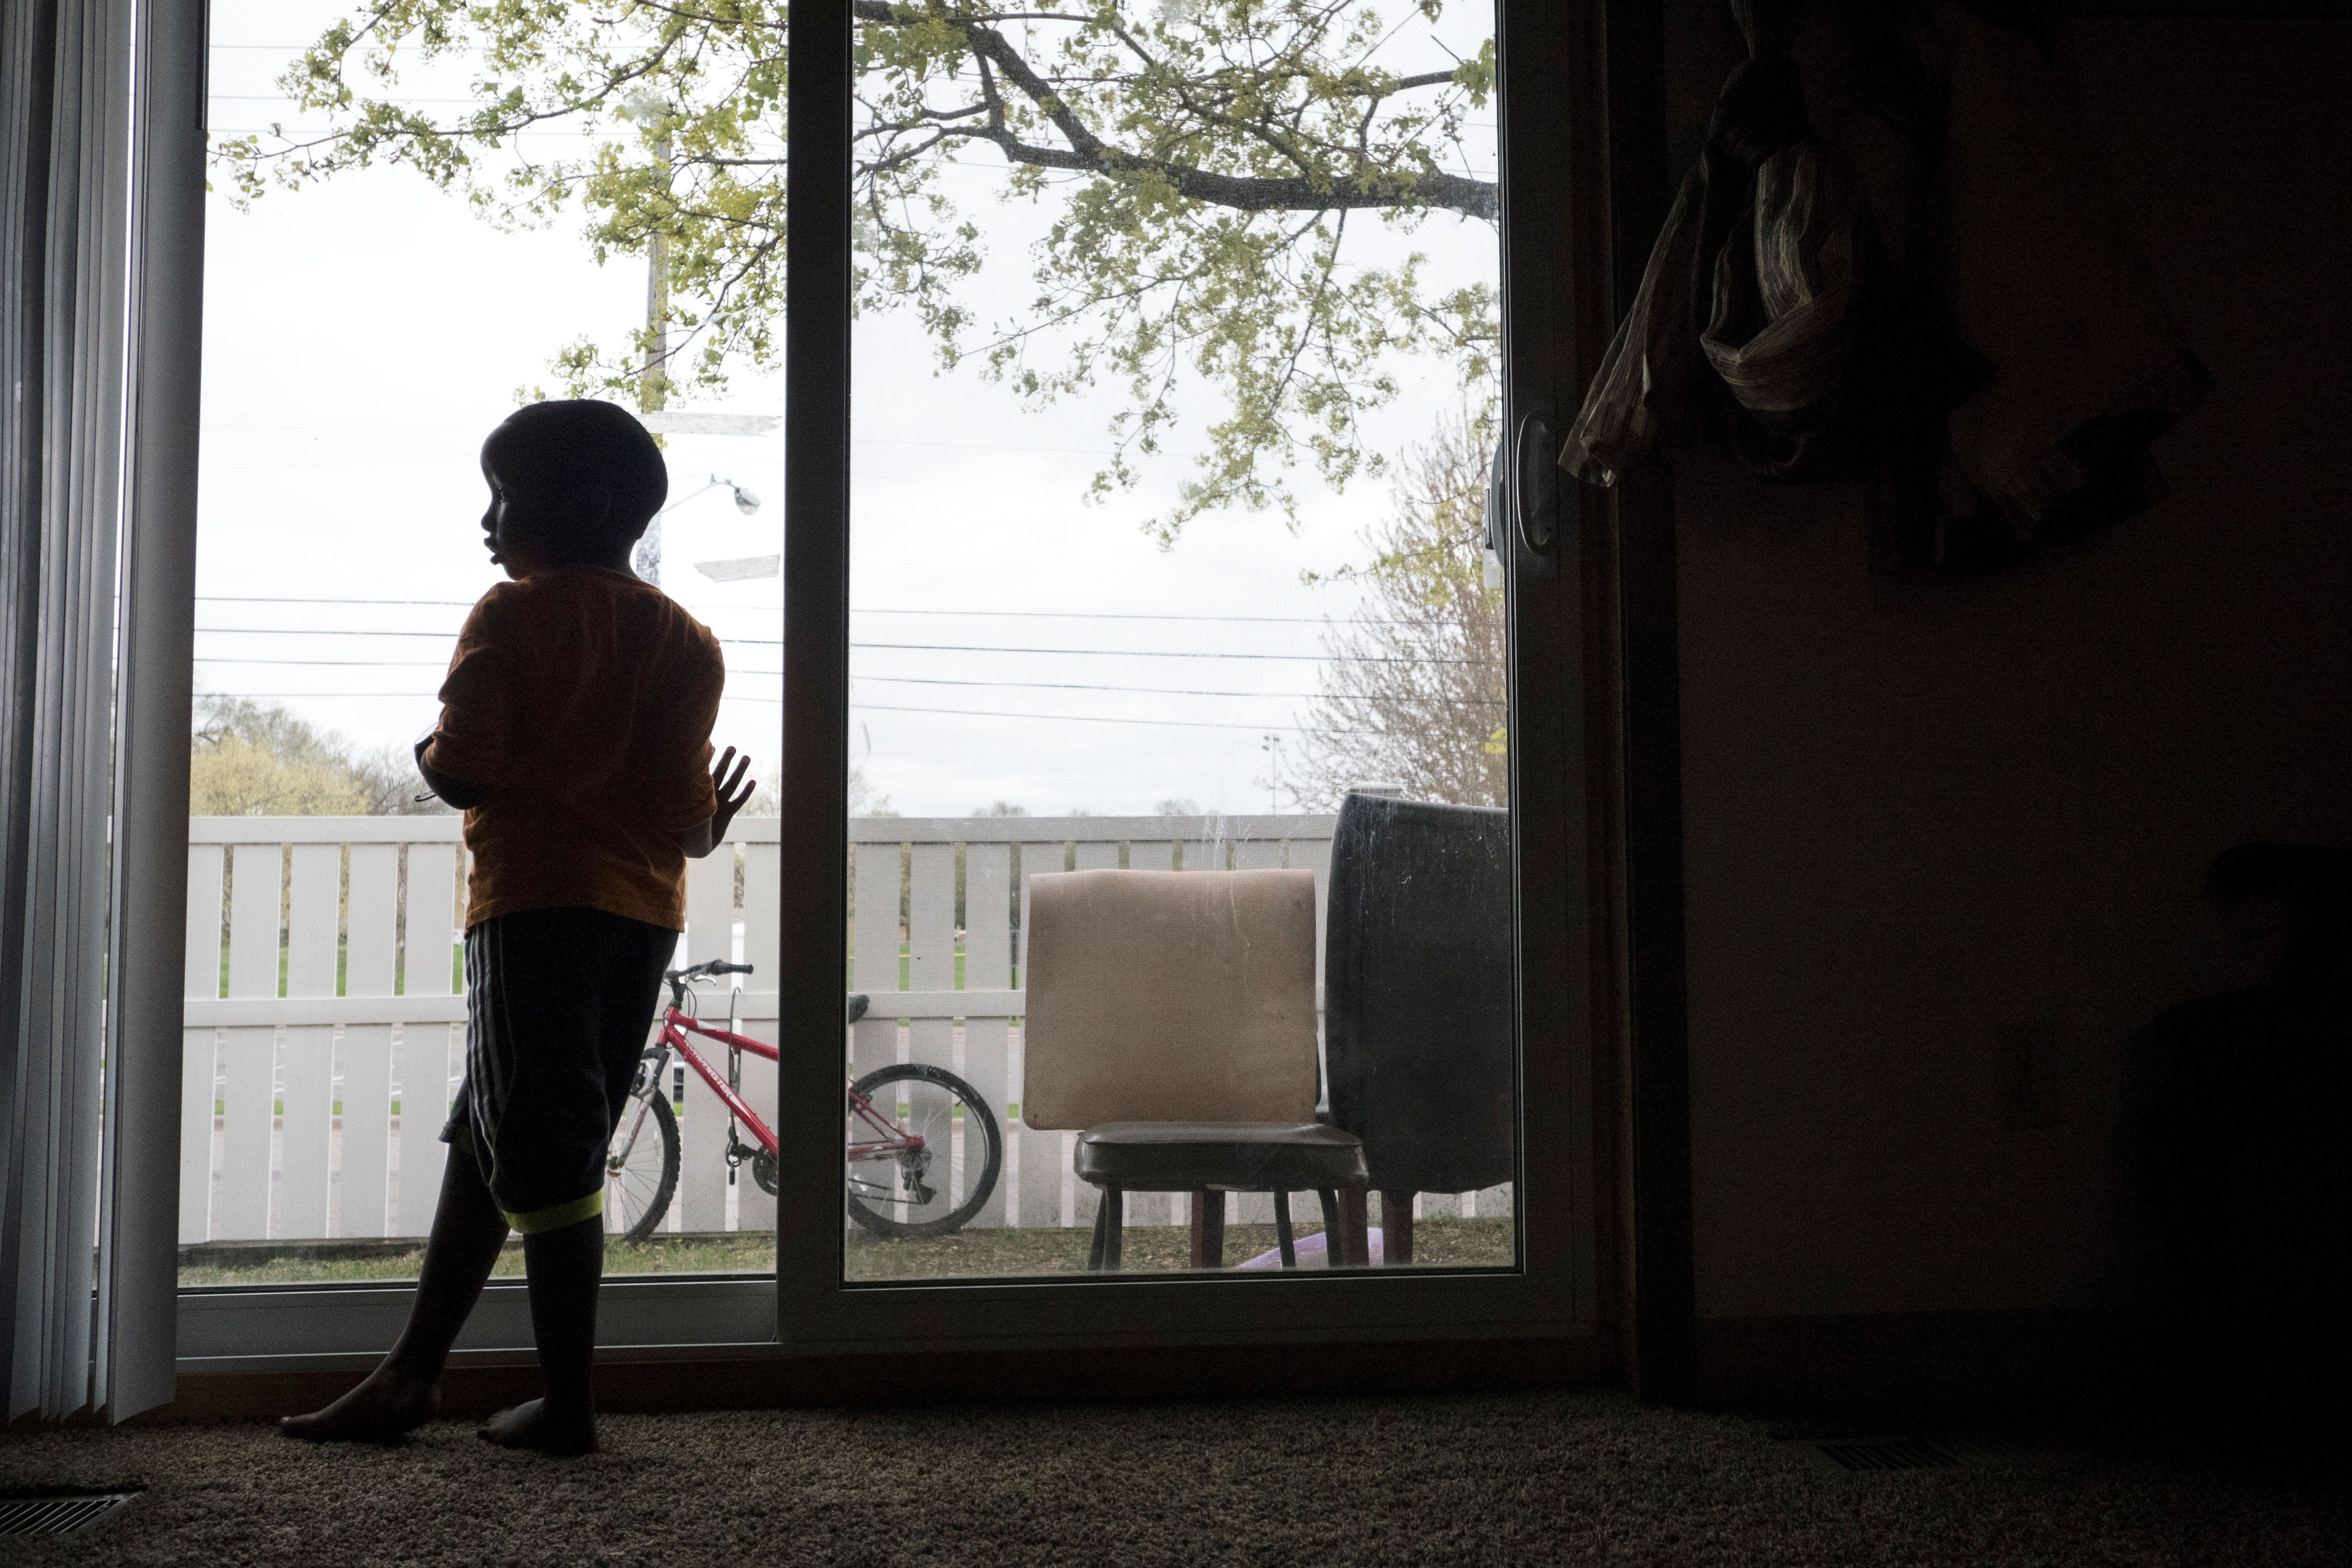 HOPKINS, MN - APRIL, 27: Abdullahi Mohamud, 5, stands by the sliding glass door in his family's apartment in Hopkins, Minn., Thursday April 27, 2017. Though two of his siblings contracted the measles during the current outbreak in Minneapolis and are now recovering at home, he received one dose of the vaccine in January and did not get sick. The children must wait until May 7, when the incubation period is over, to return to school. (Photo by Courtney Perry/For the Washington Post)